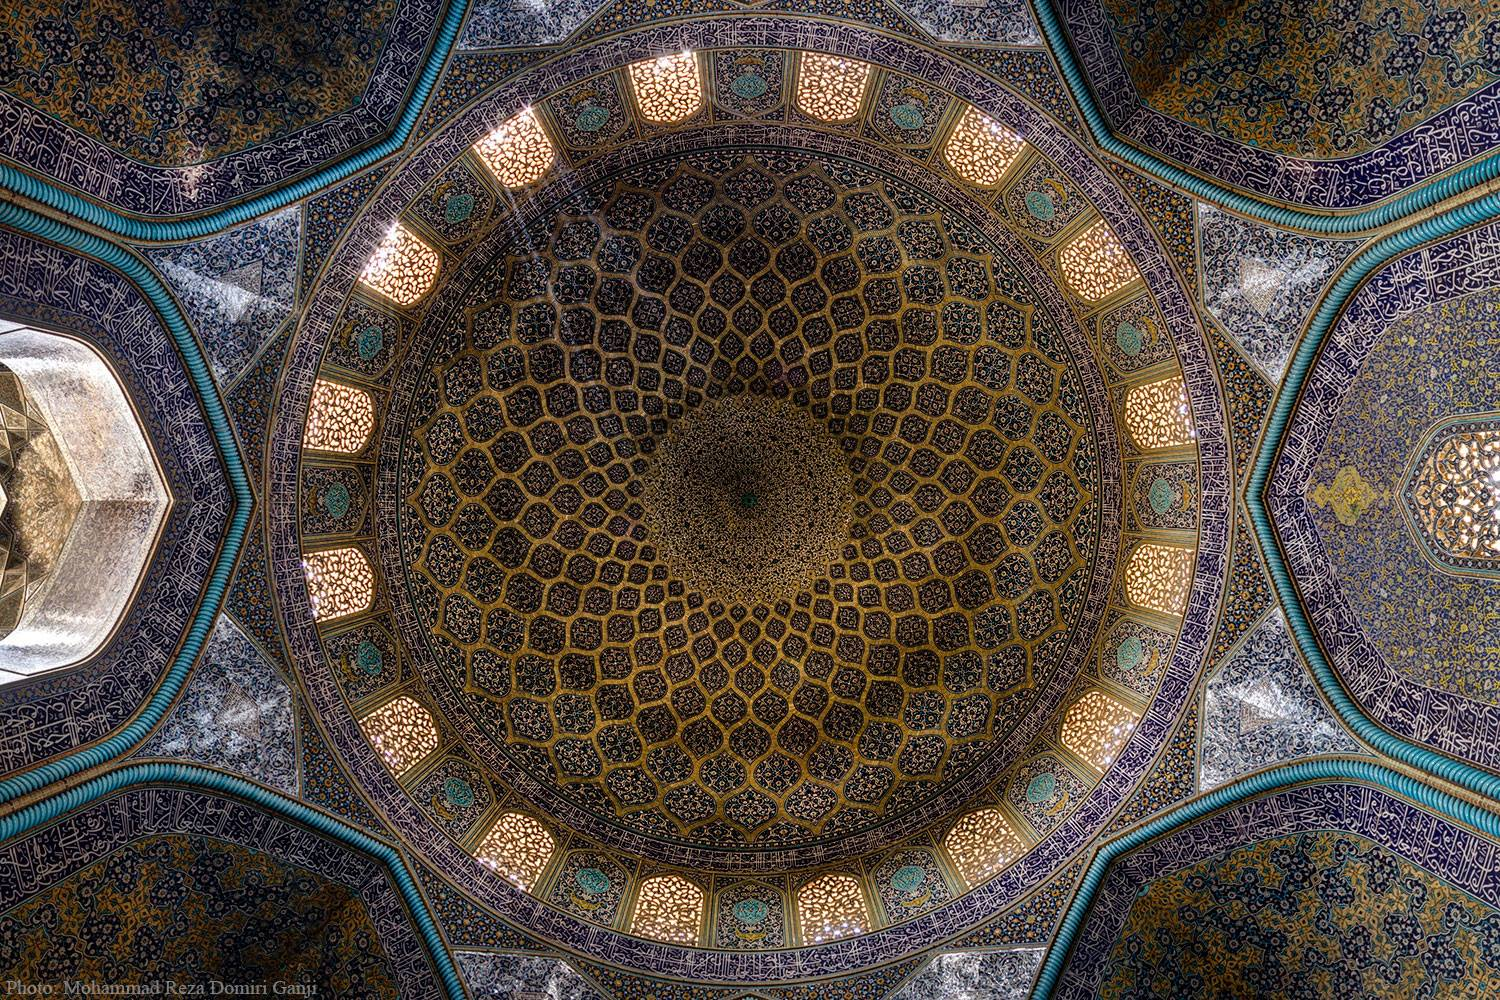 Kaleidoscope Views of the Middle East's Mosques: JuxtapozMosque07.jpg